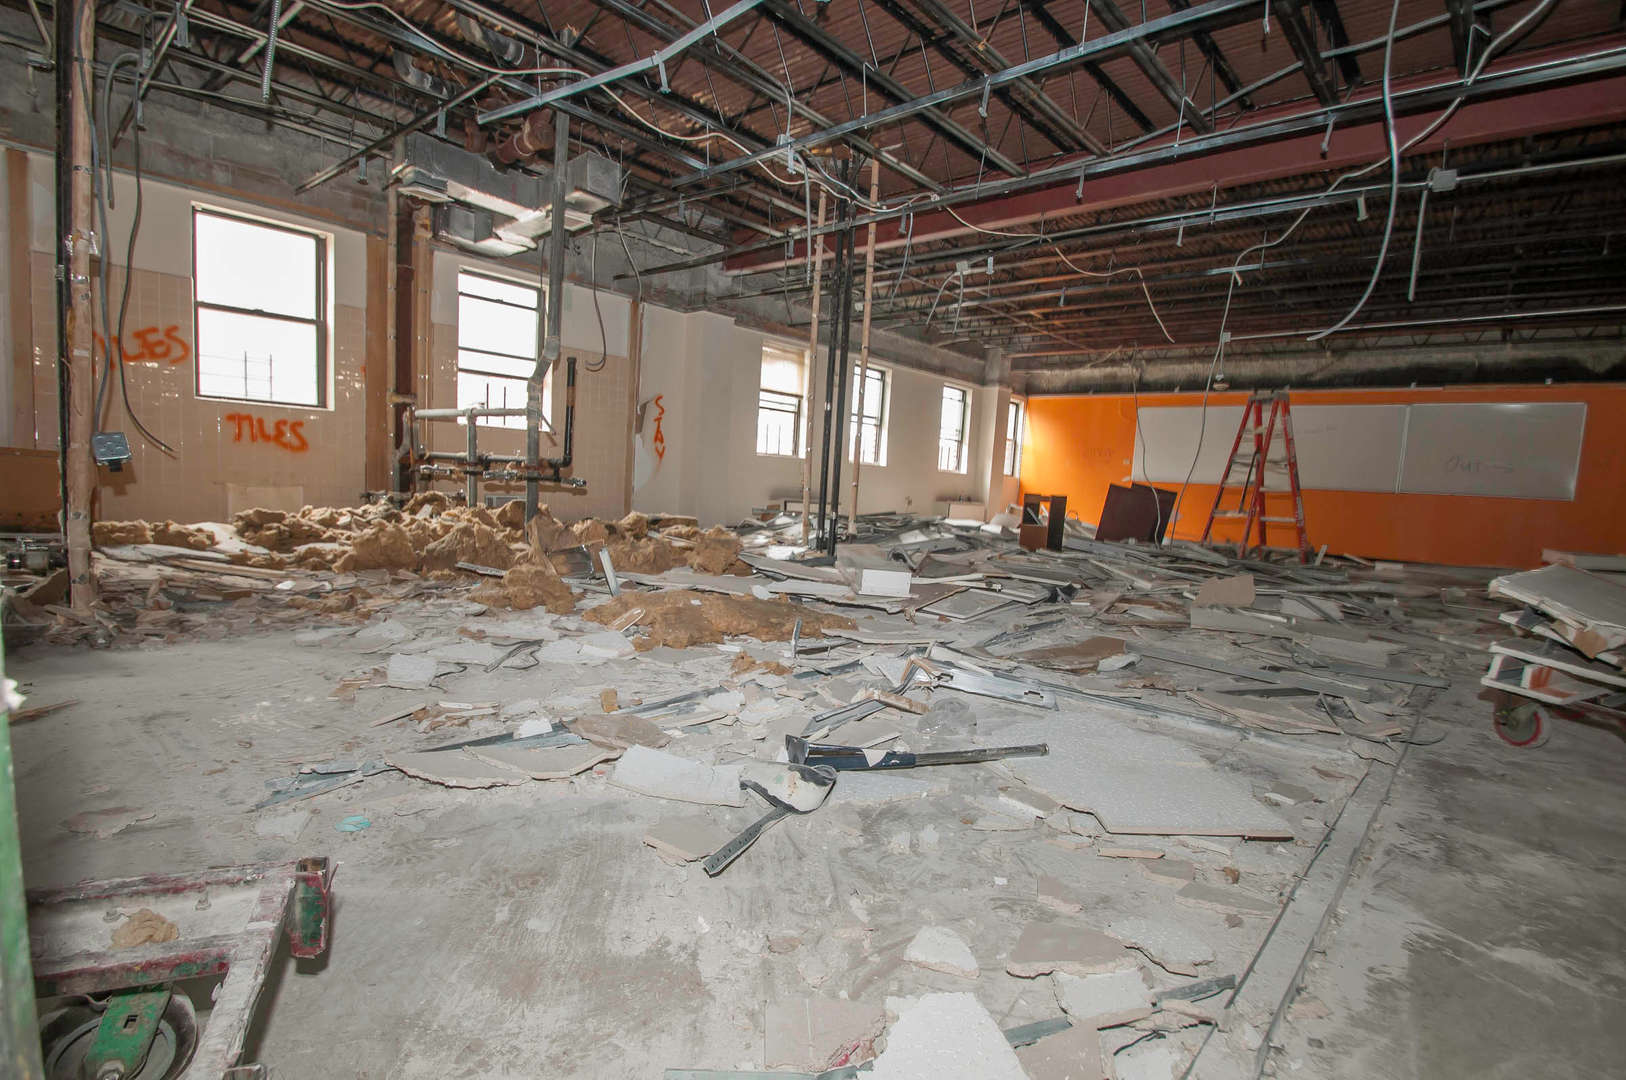 Interior room fully demolished ceiling and walls and preparing for new construction